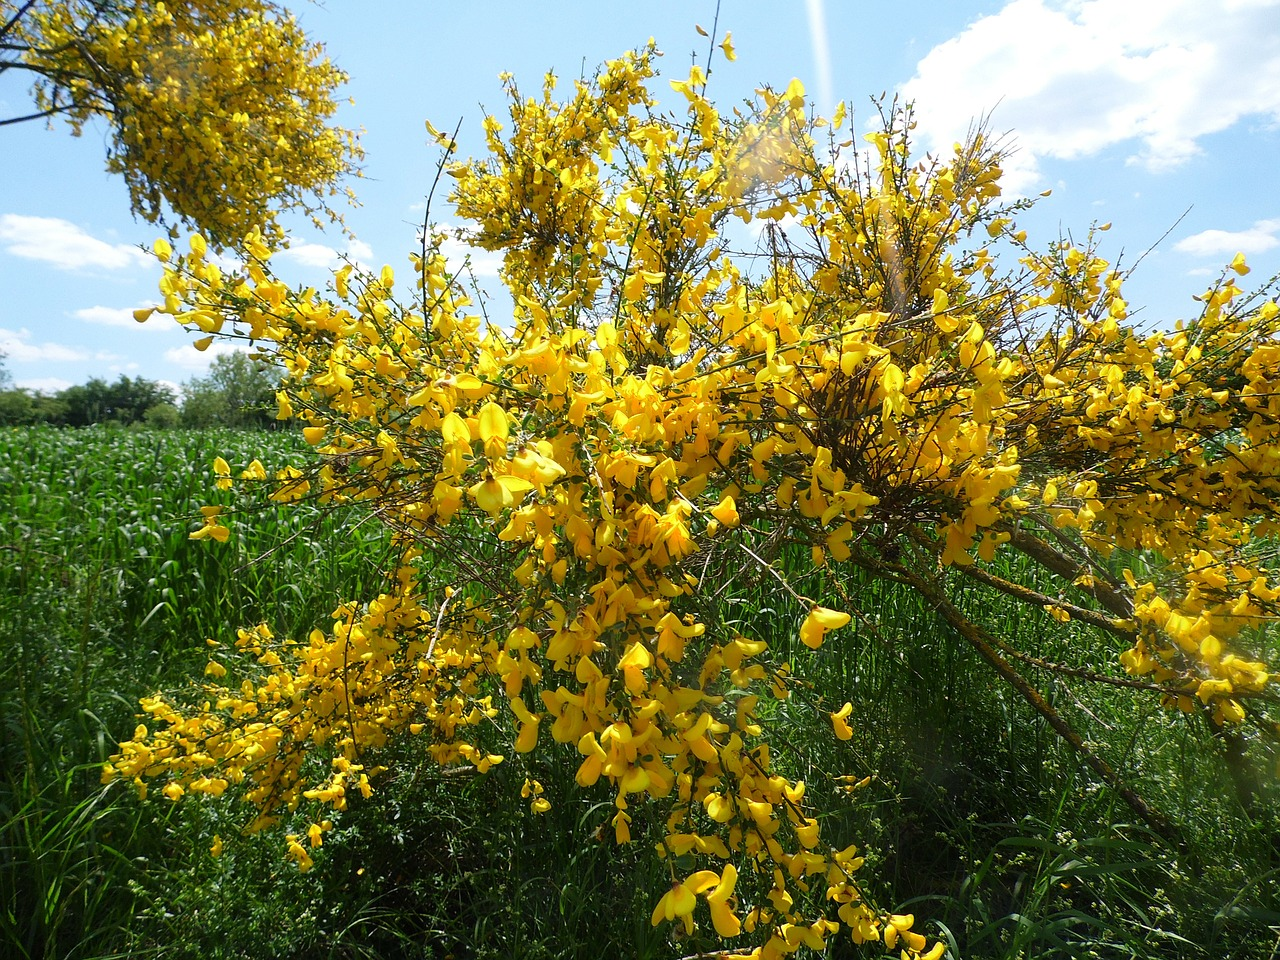 Yellowflowersspringbushyellow Shrub Free Photo From Needpix